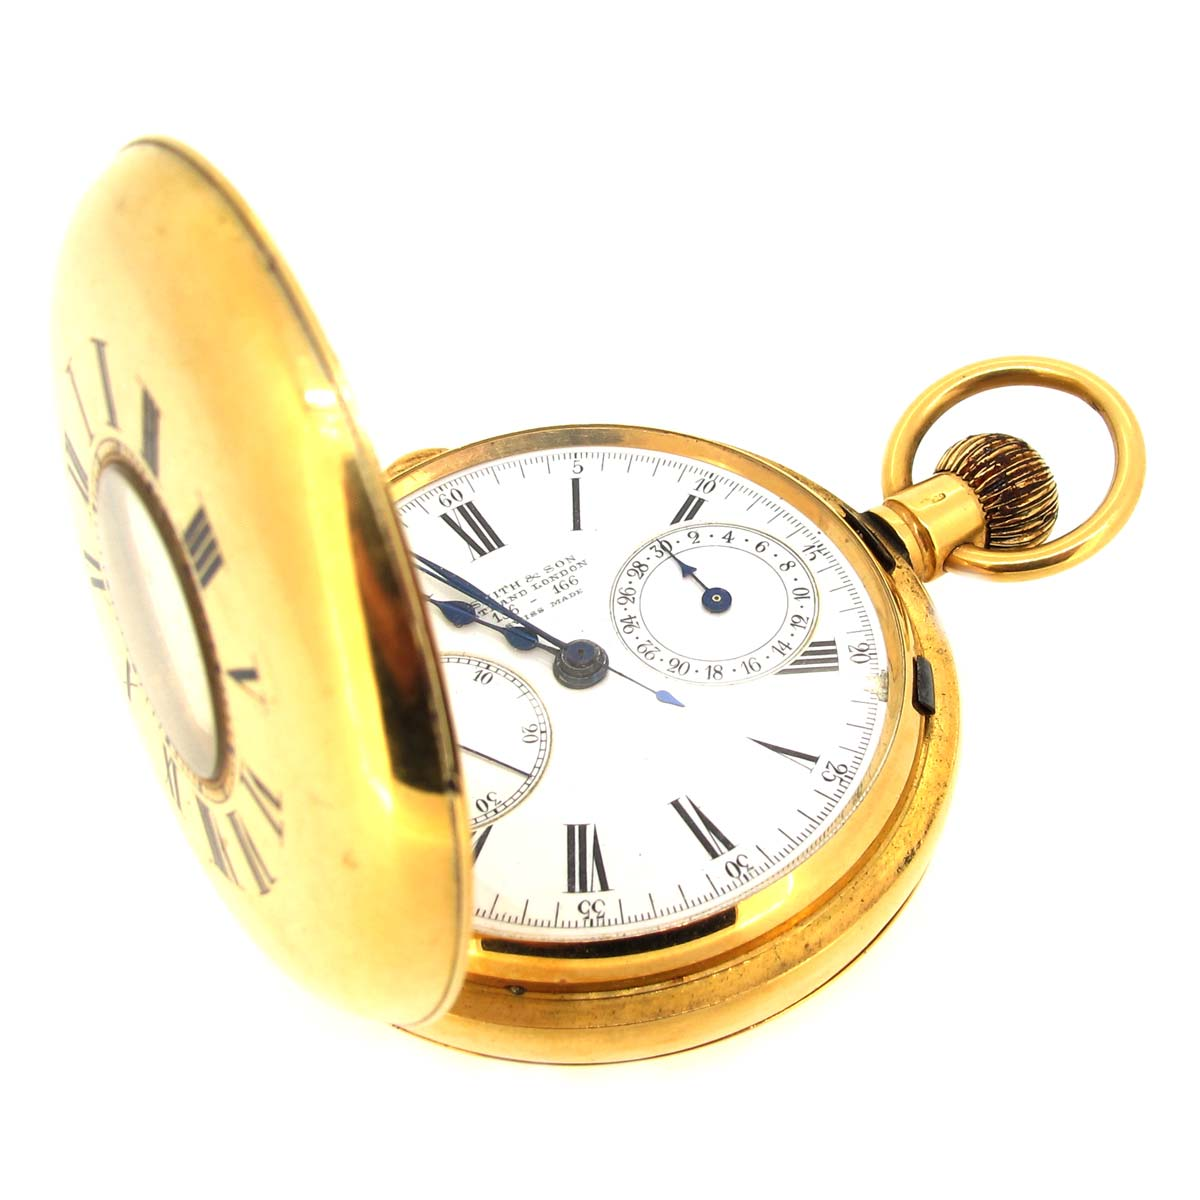 Antique 18ct gold & enamel pocket watch